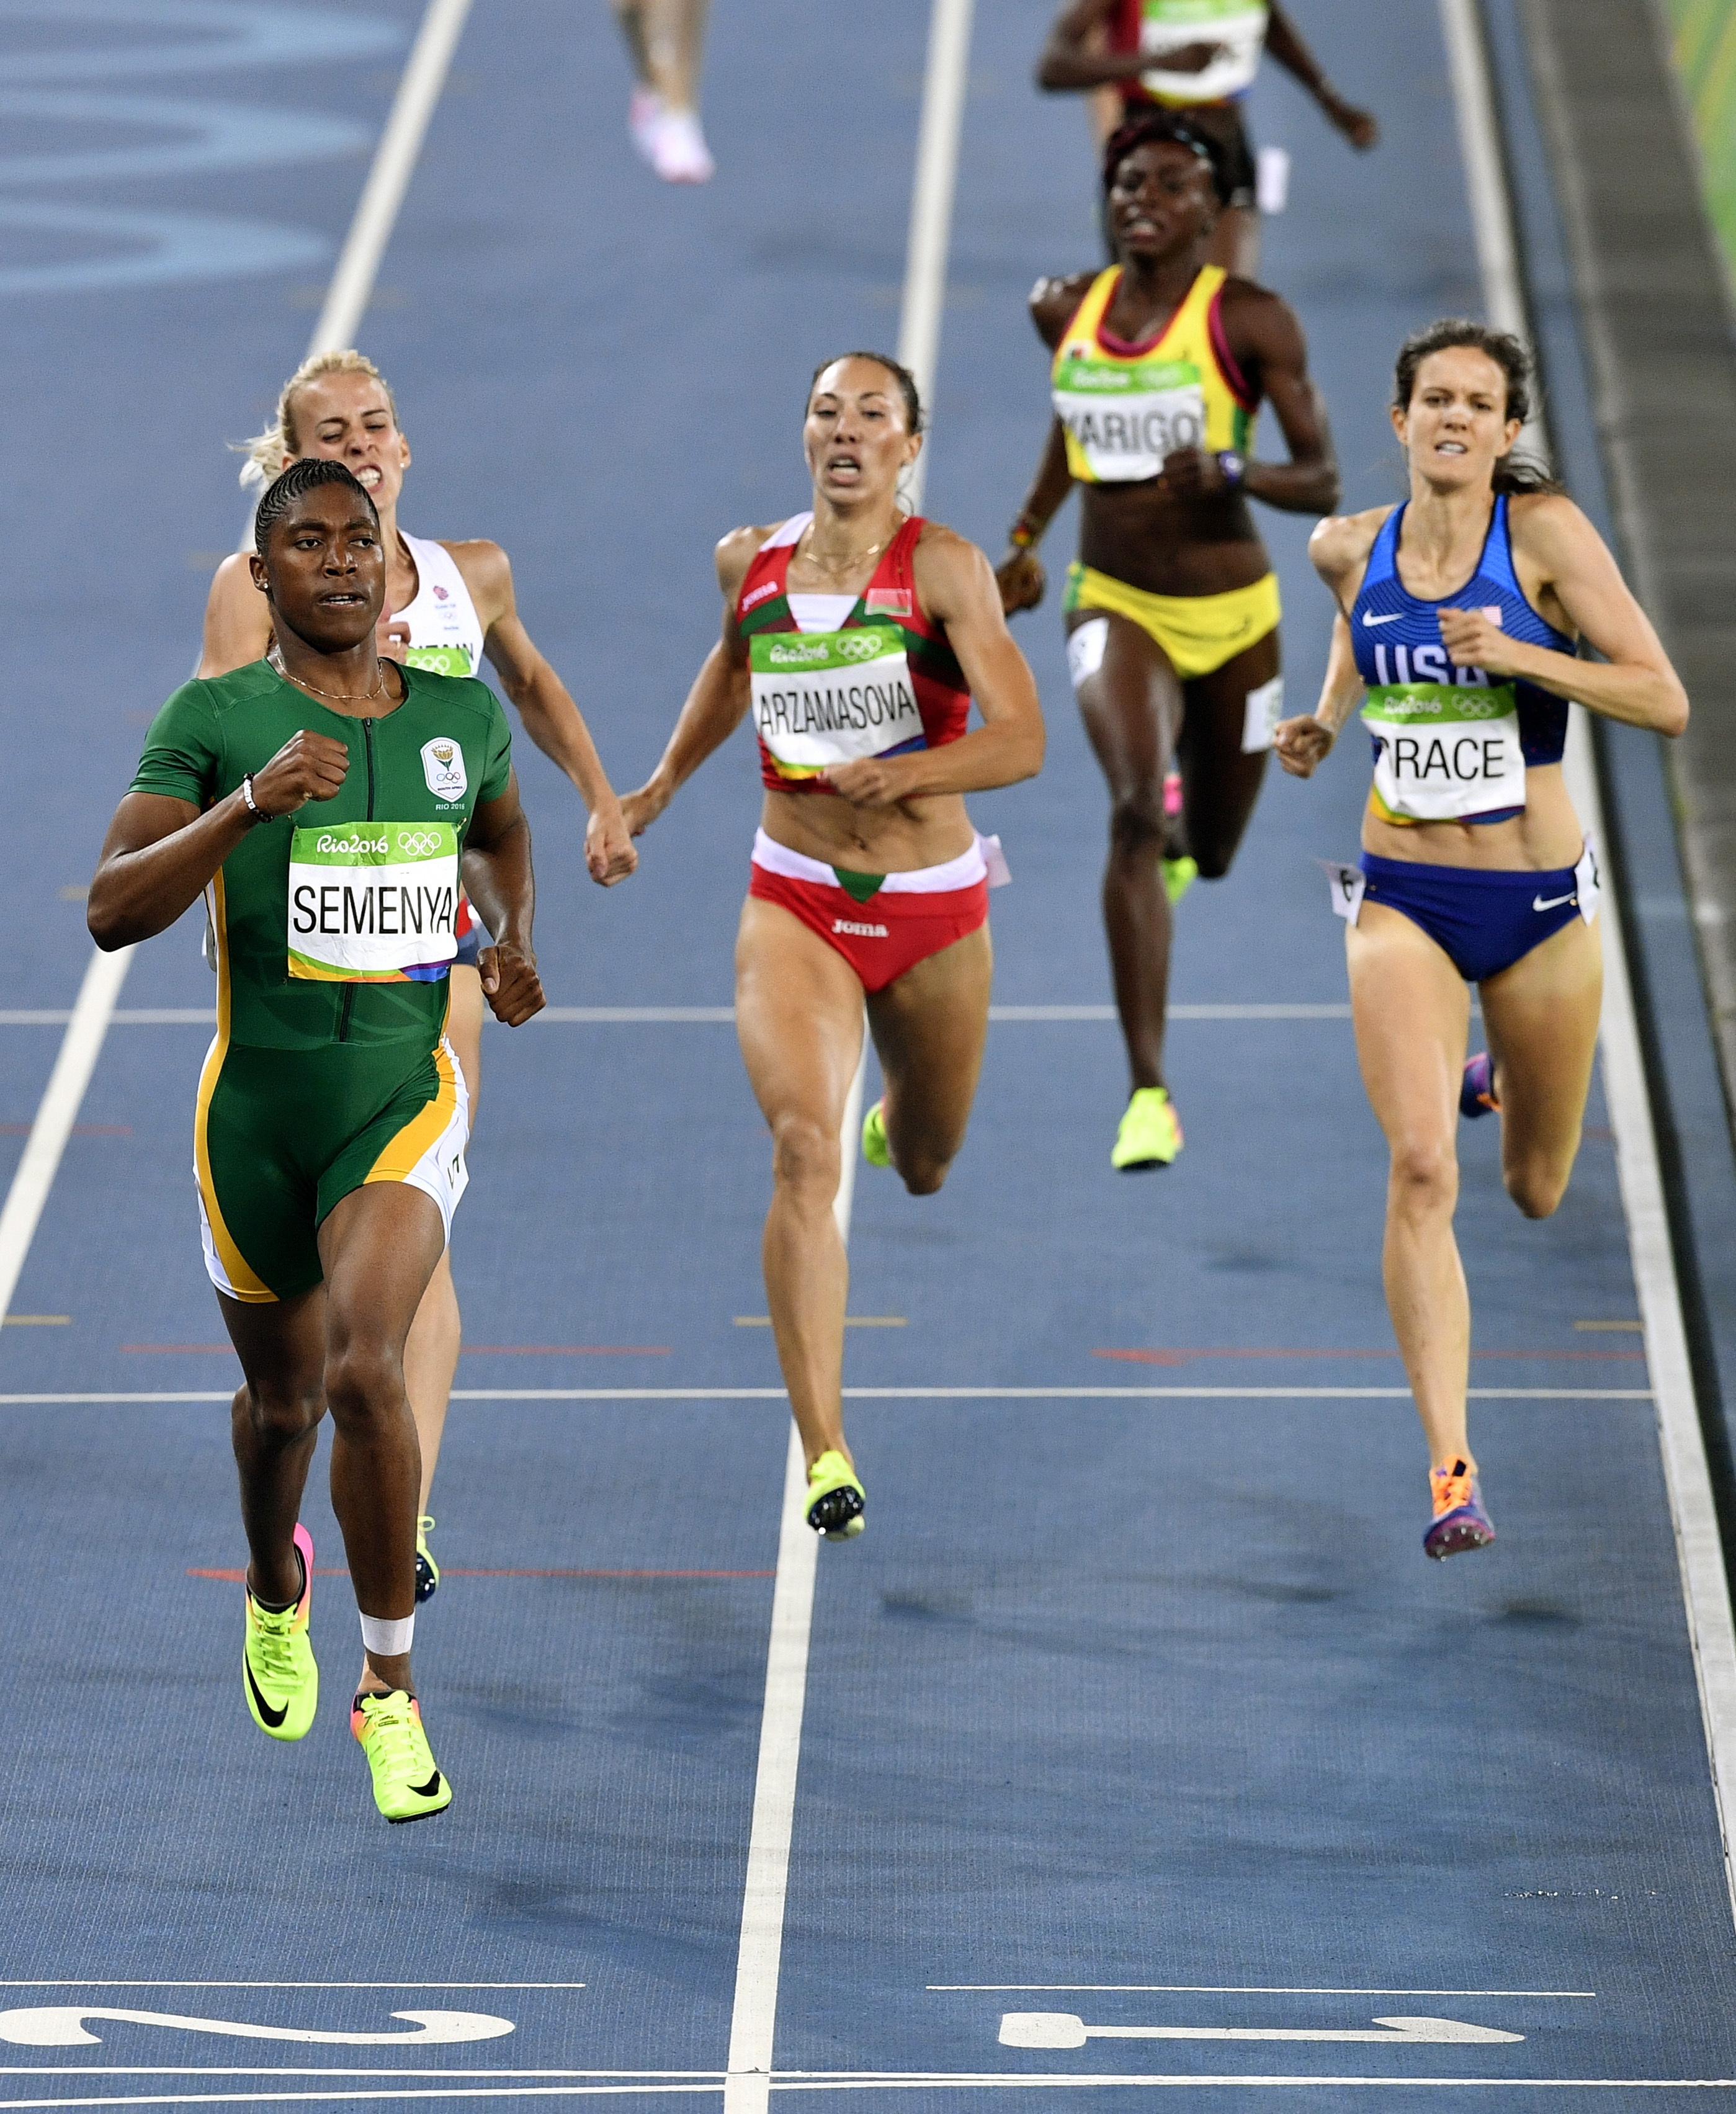 South Africa's Caster Semenya, left, Britain's Lynsey Sharp, second left, Belarus' Marina Arzamasova, center, and United States' Kate Grace, right, compete in a women's 800-meter semifinal during the athletics competitions of the 2016 Summer Olympics at t